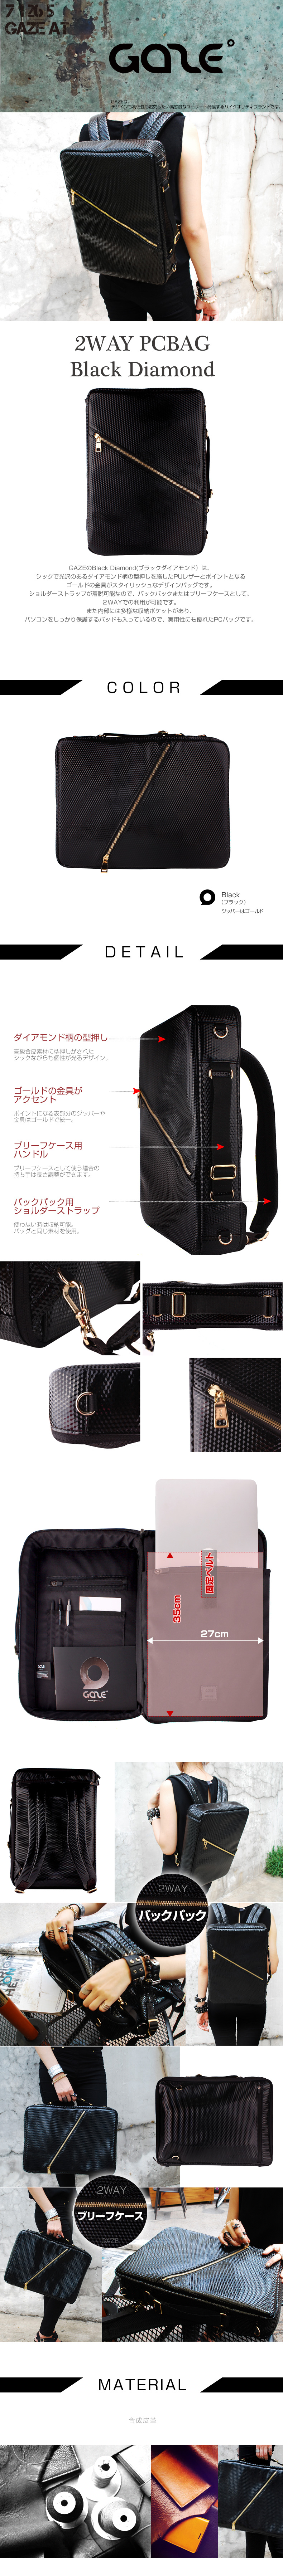 商品詳細-GAZE2WAY PCバッグ Black Diamond